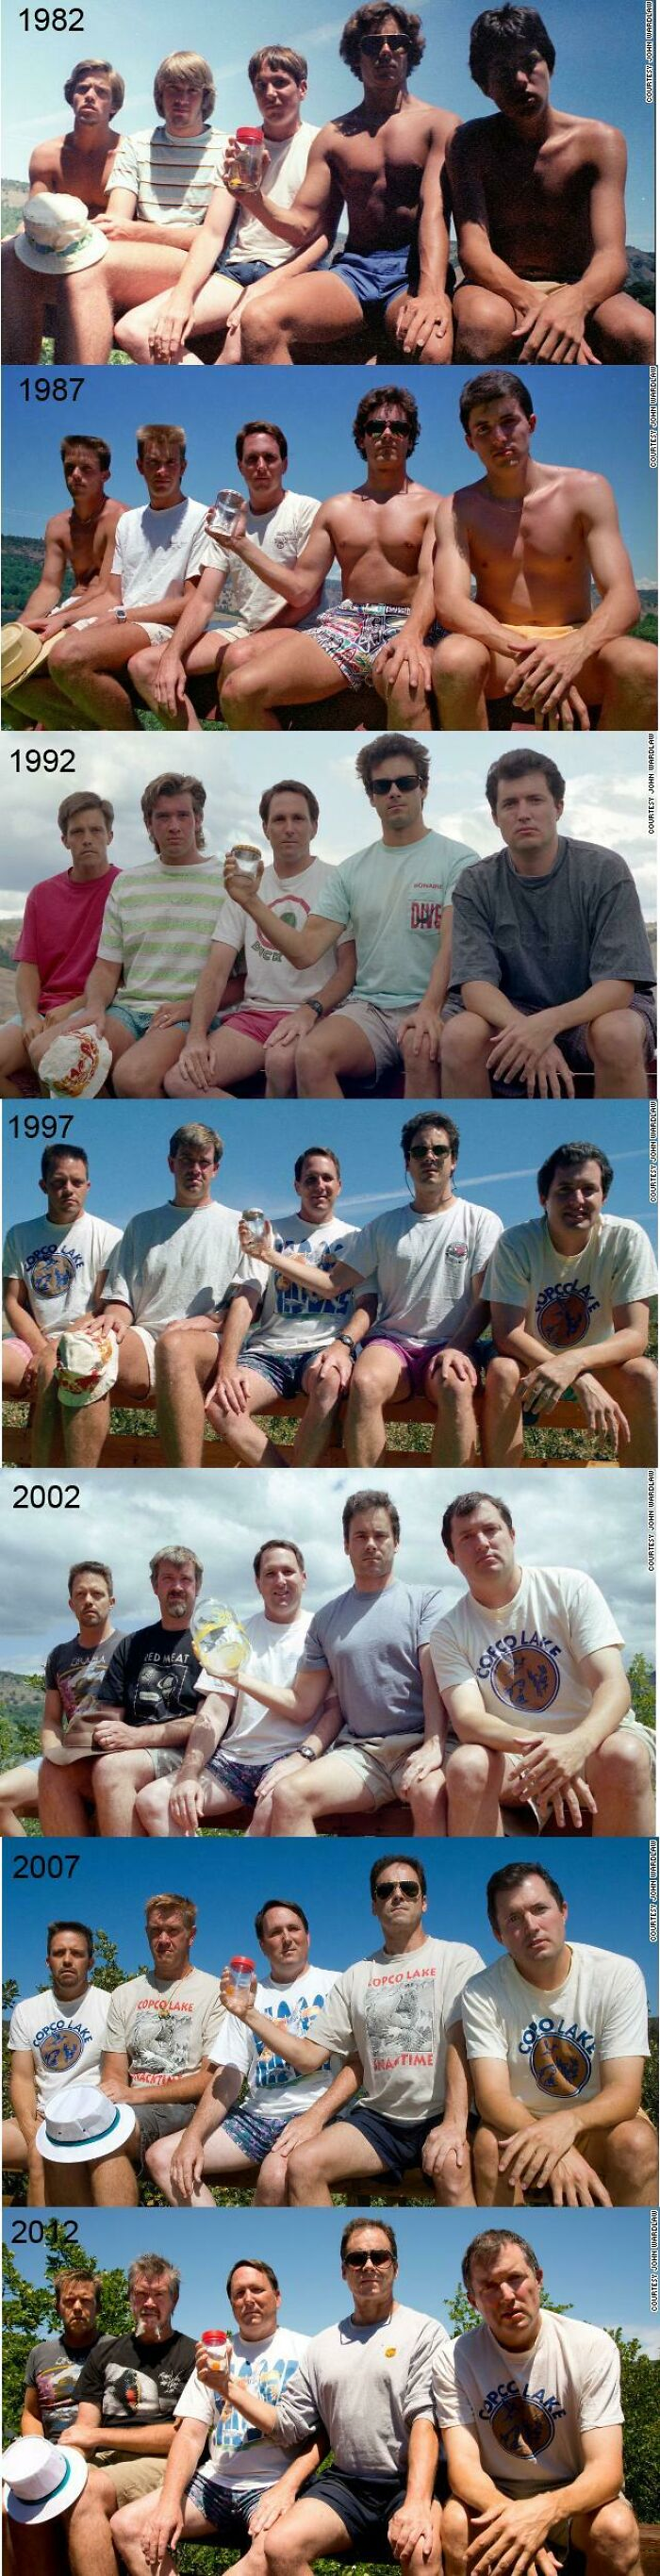 Every Five Years From 1982-2012, Five Men Take The Same Photo At Their Cabin At Copco Lake In California. They Plan On Adding A 2017 Photo This Summer.